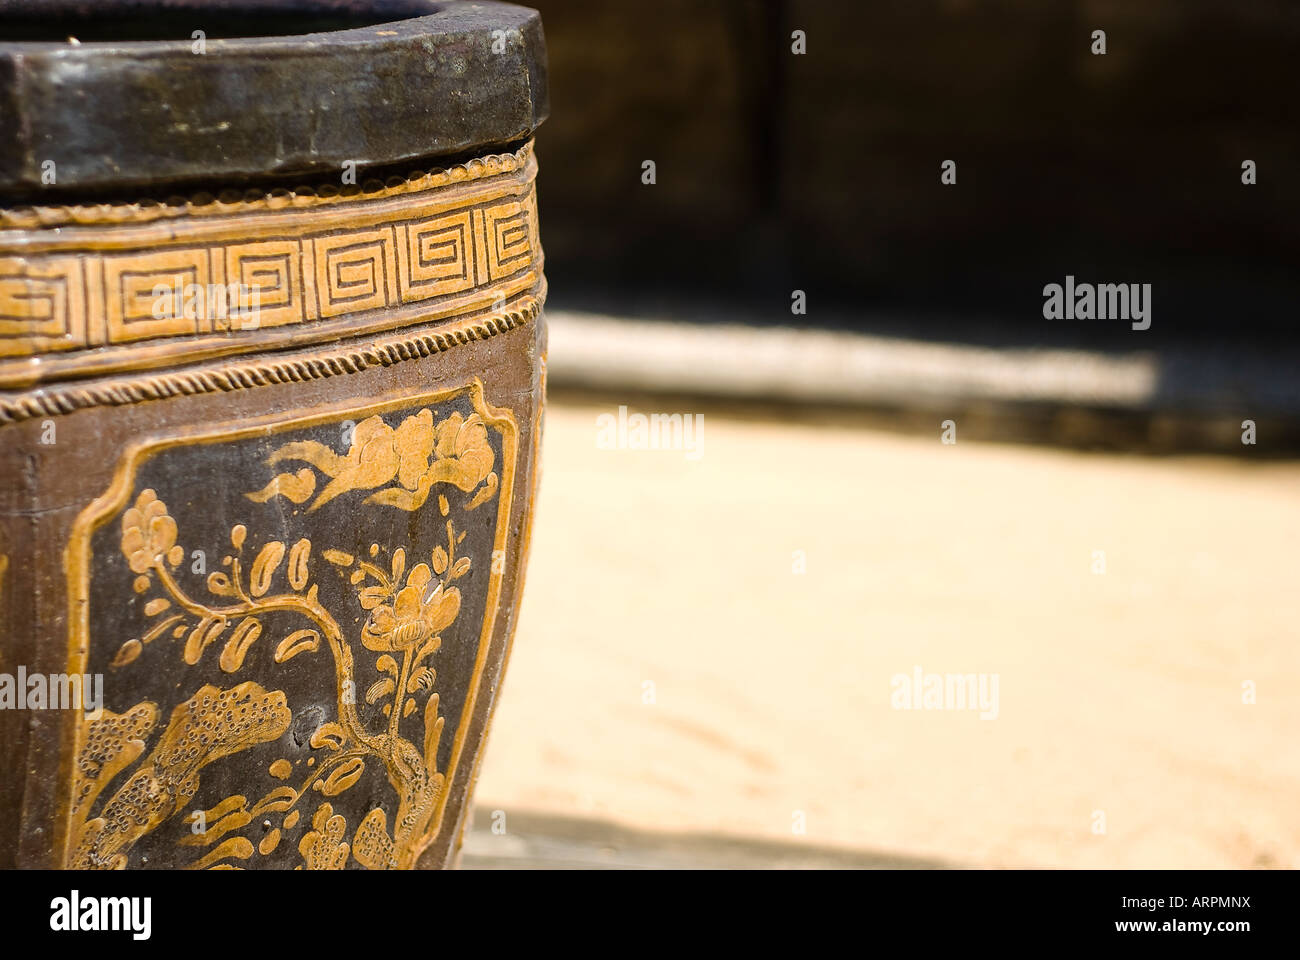 Ancient greek vase detail - Stock Image